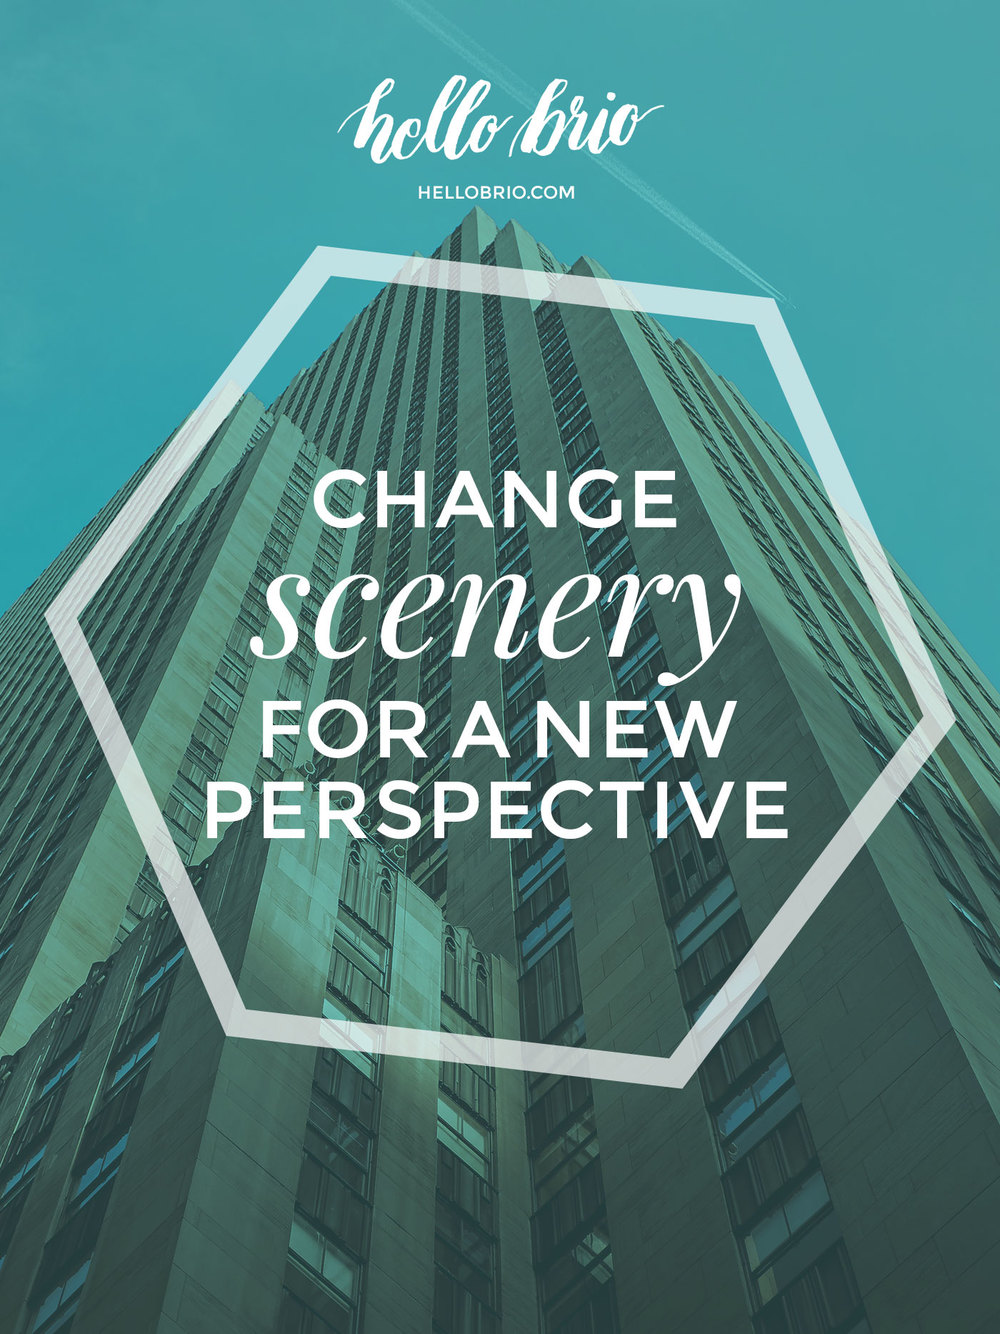 Change scenery for a new perspective